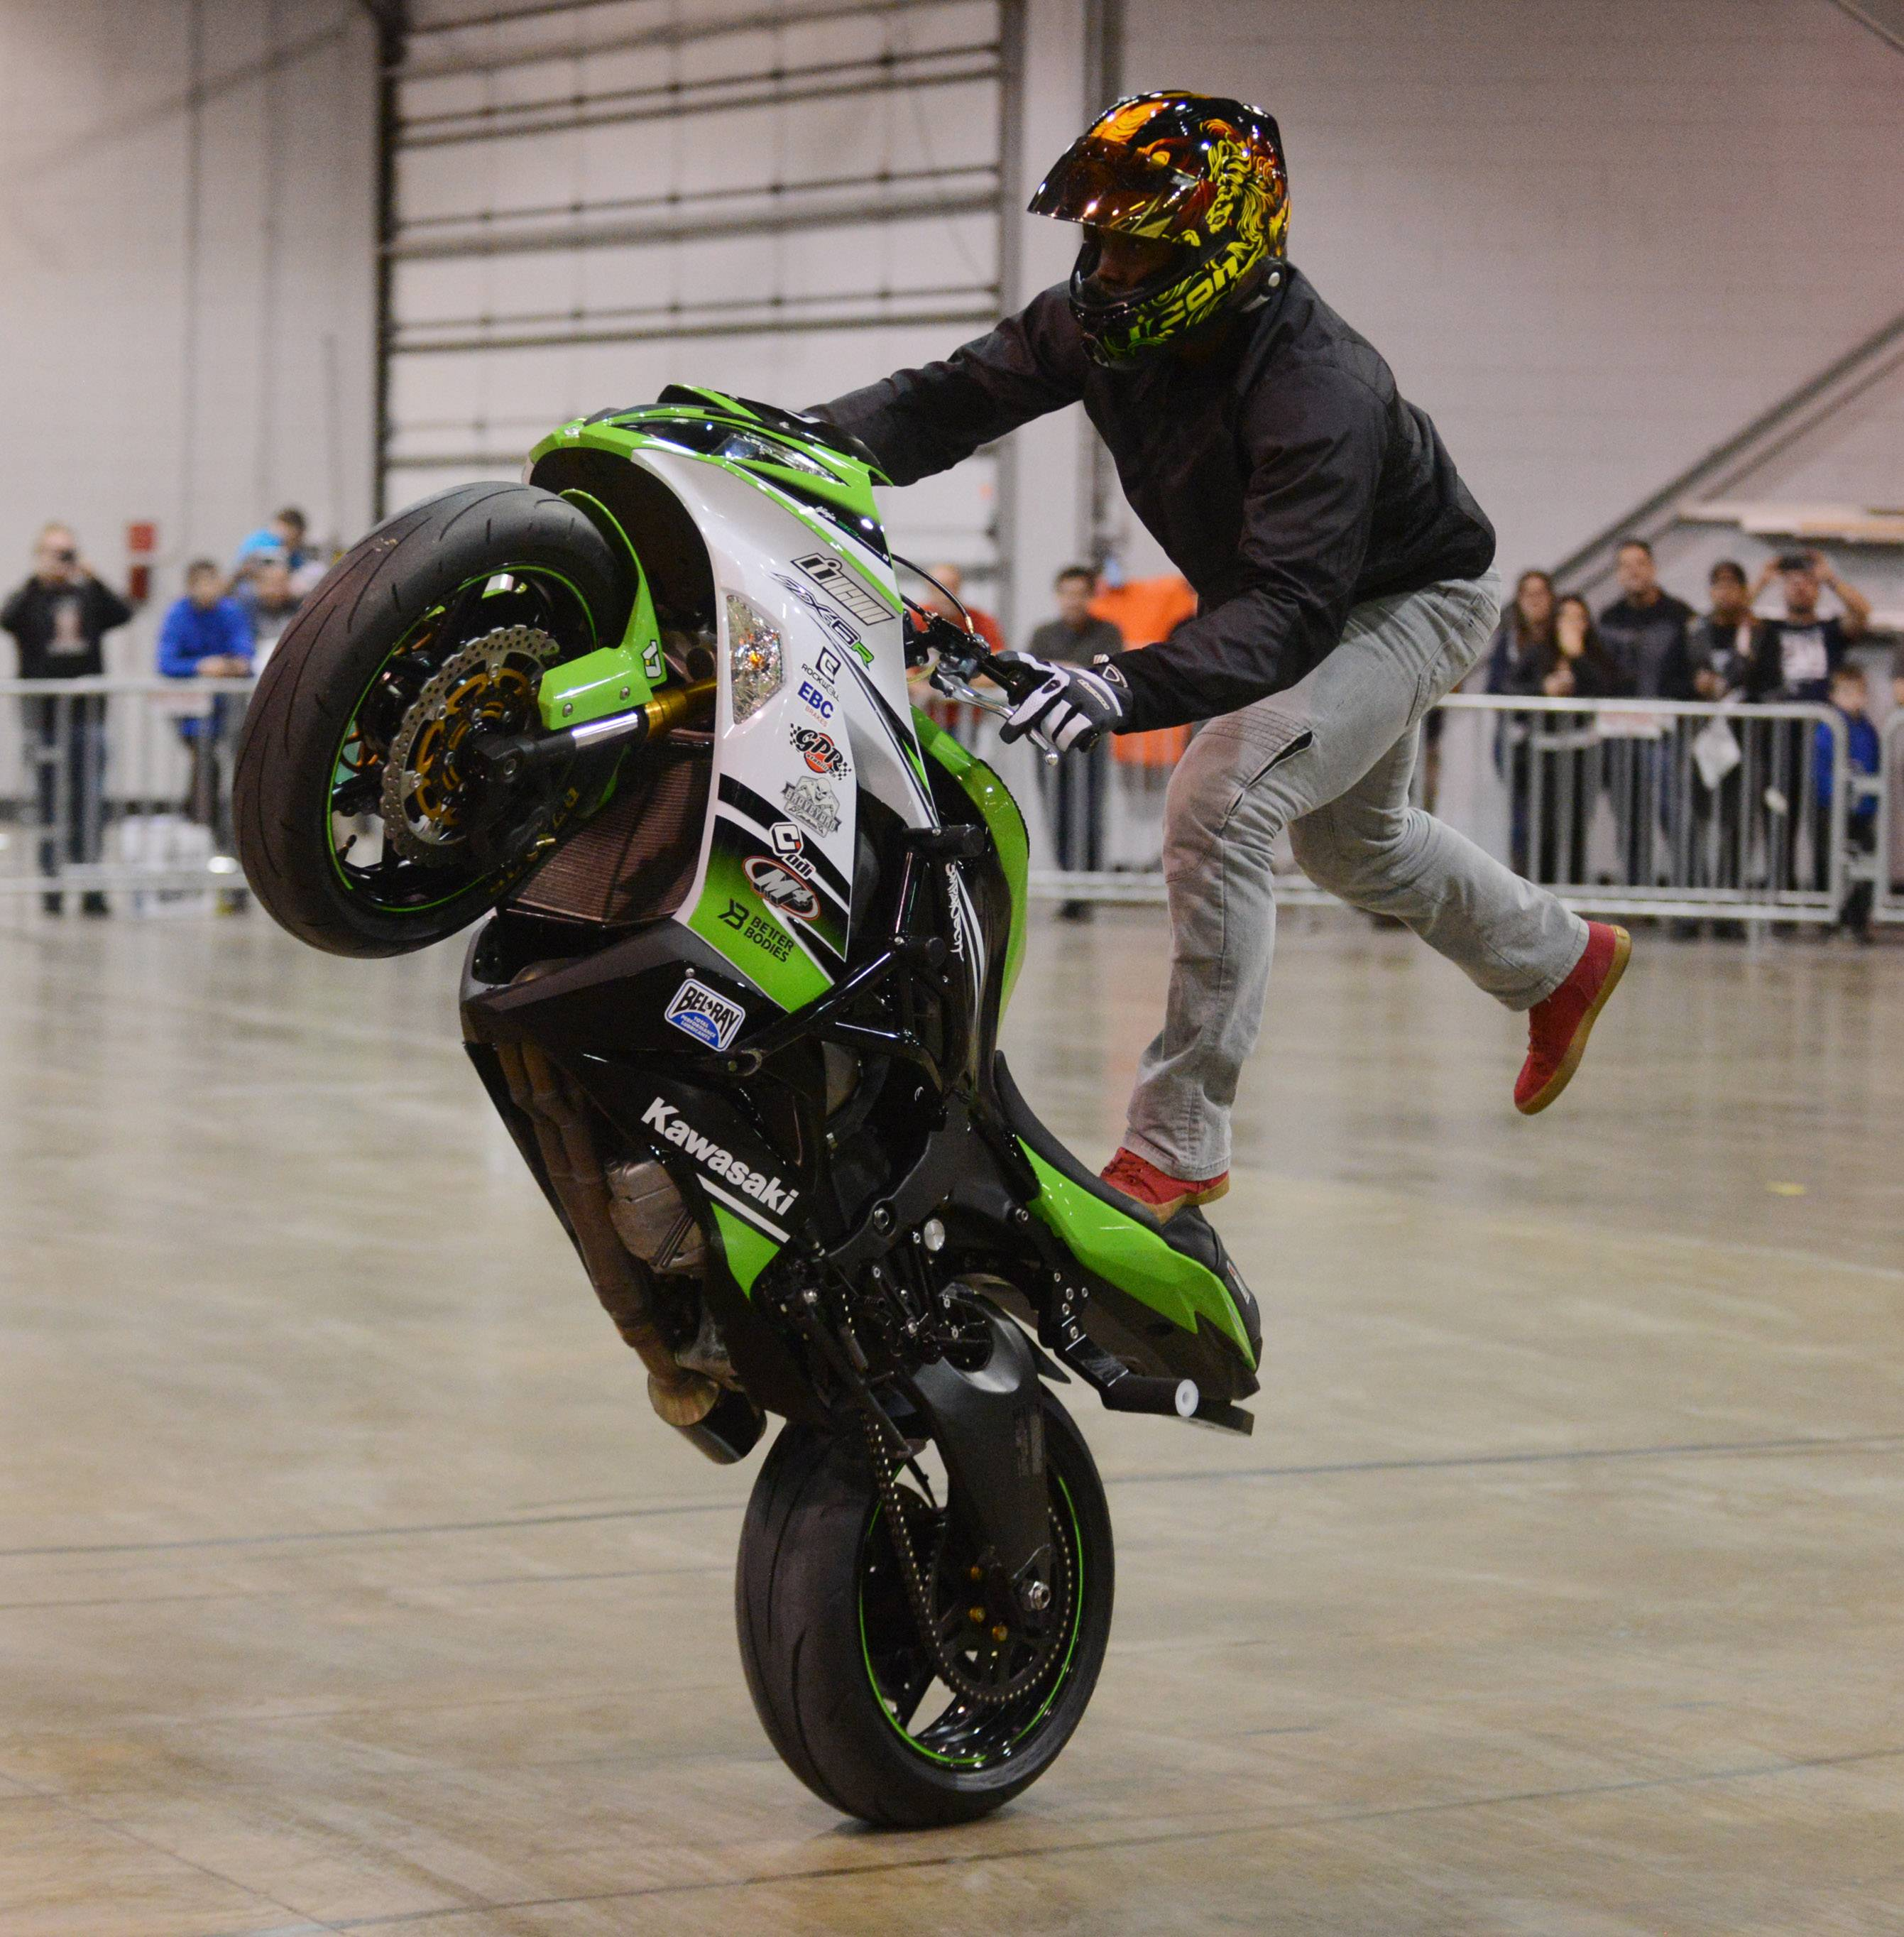 A stunt rider performs during a previous Progressive International Motorcycle Show at the Donald E. Stephens Convention Center in Rosemont.